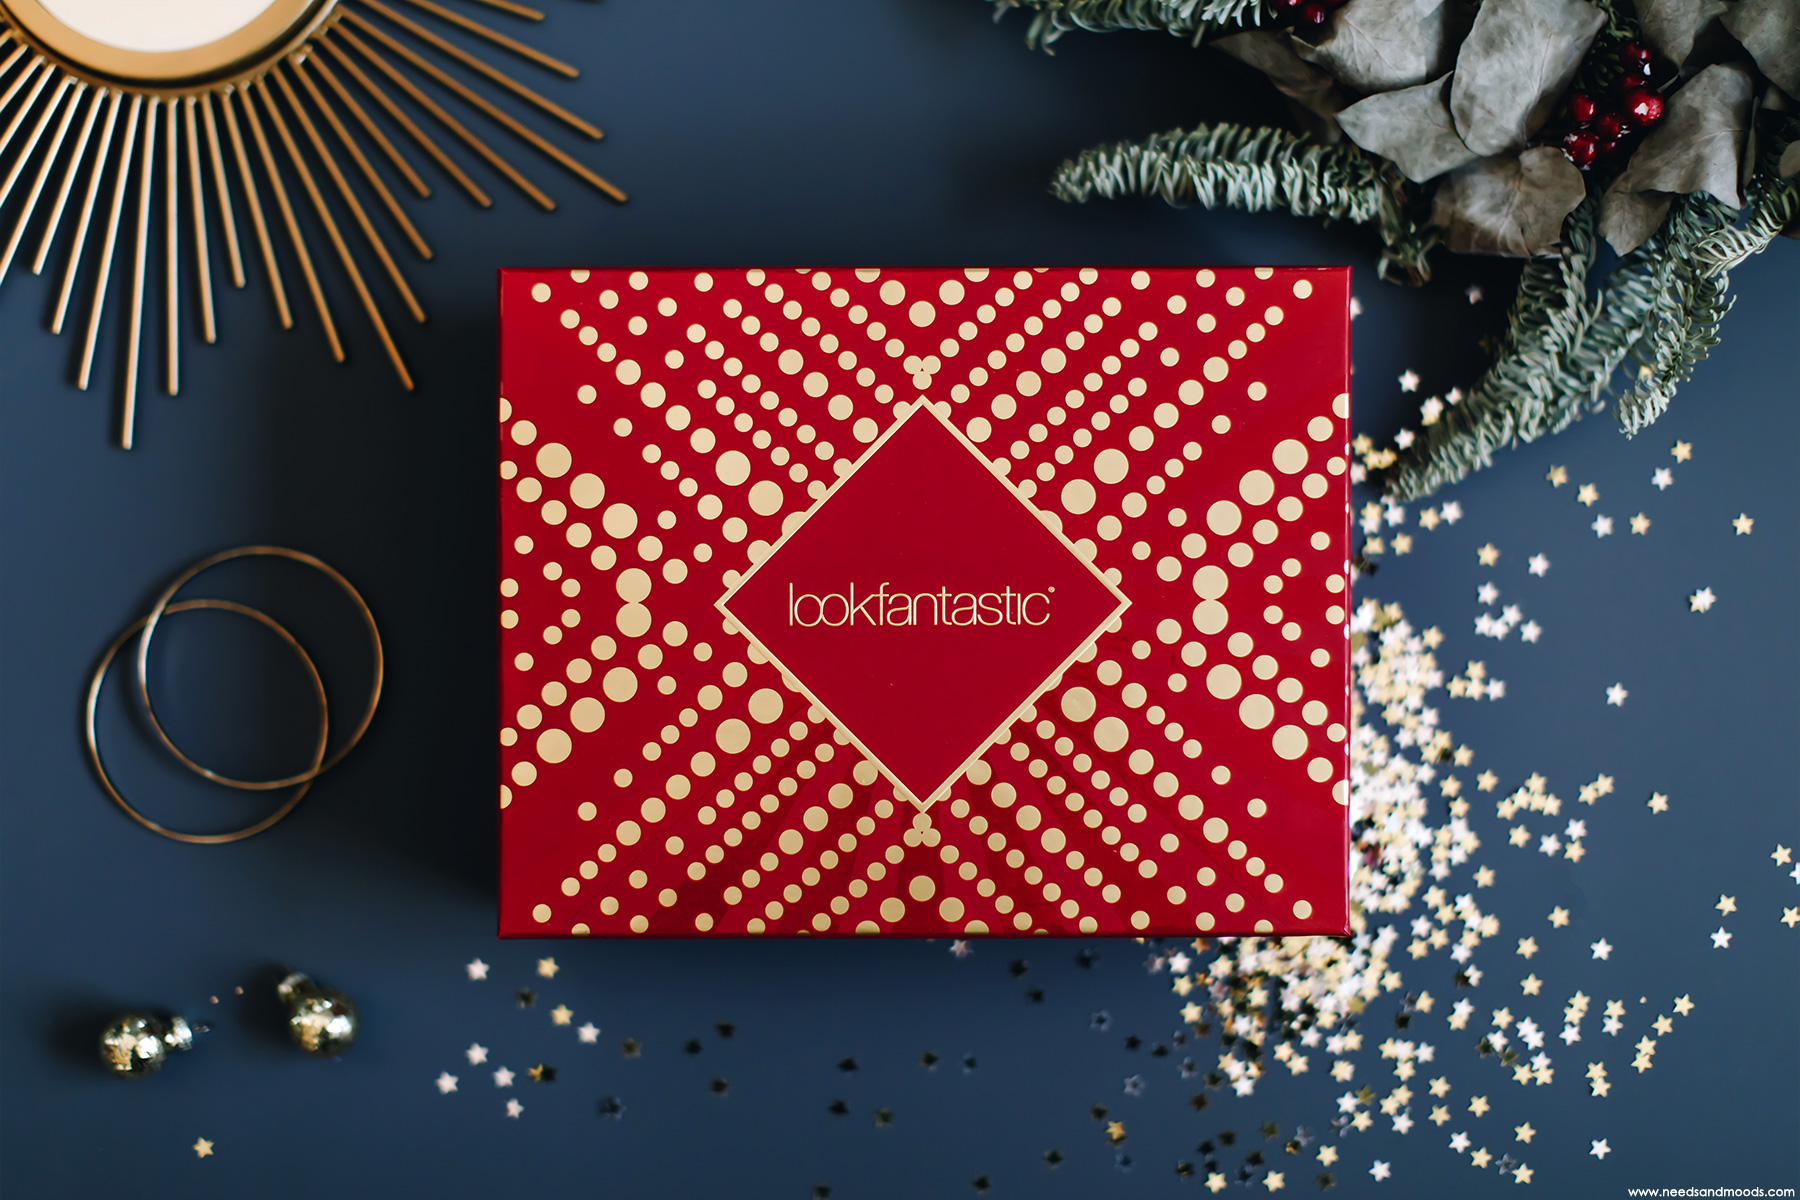 lookfantastic box decembre 2018